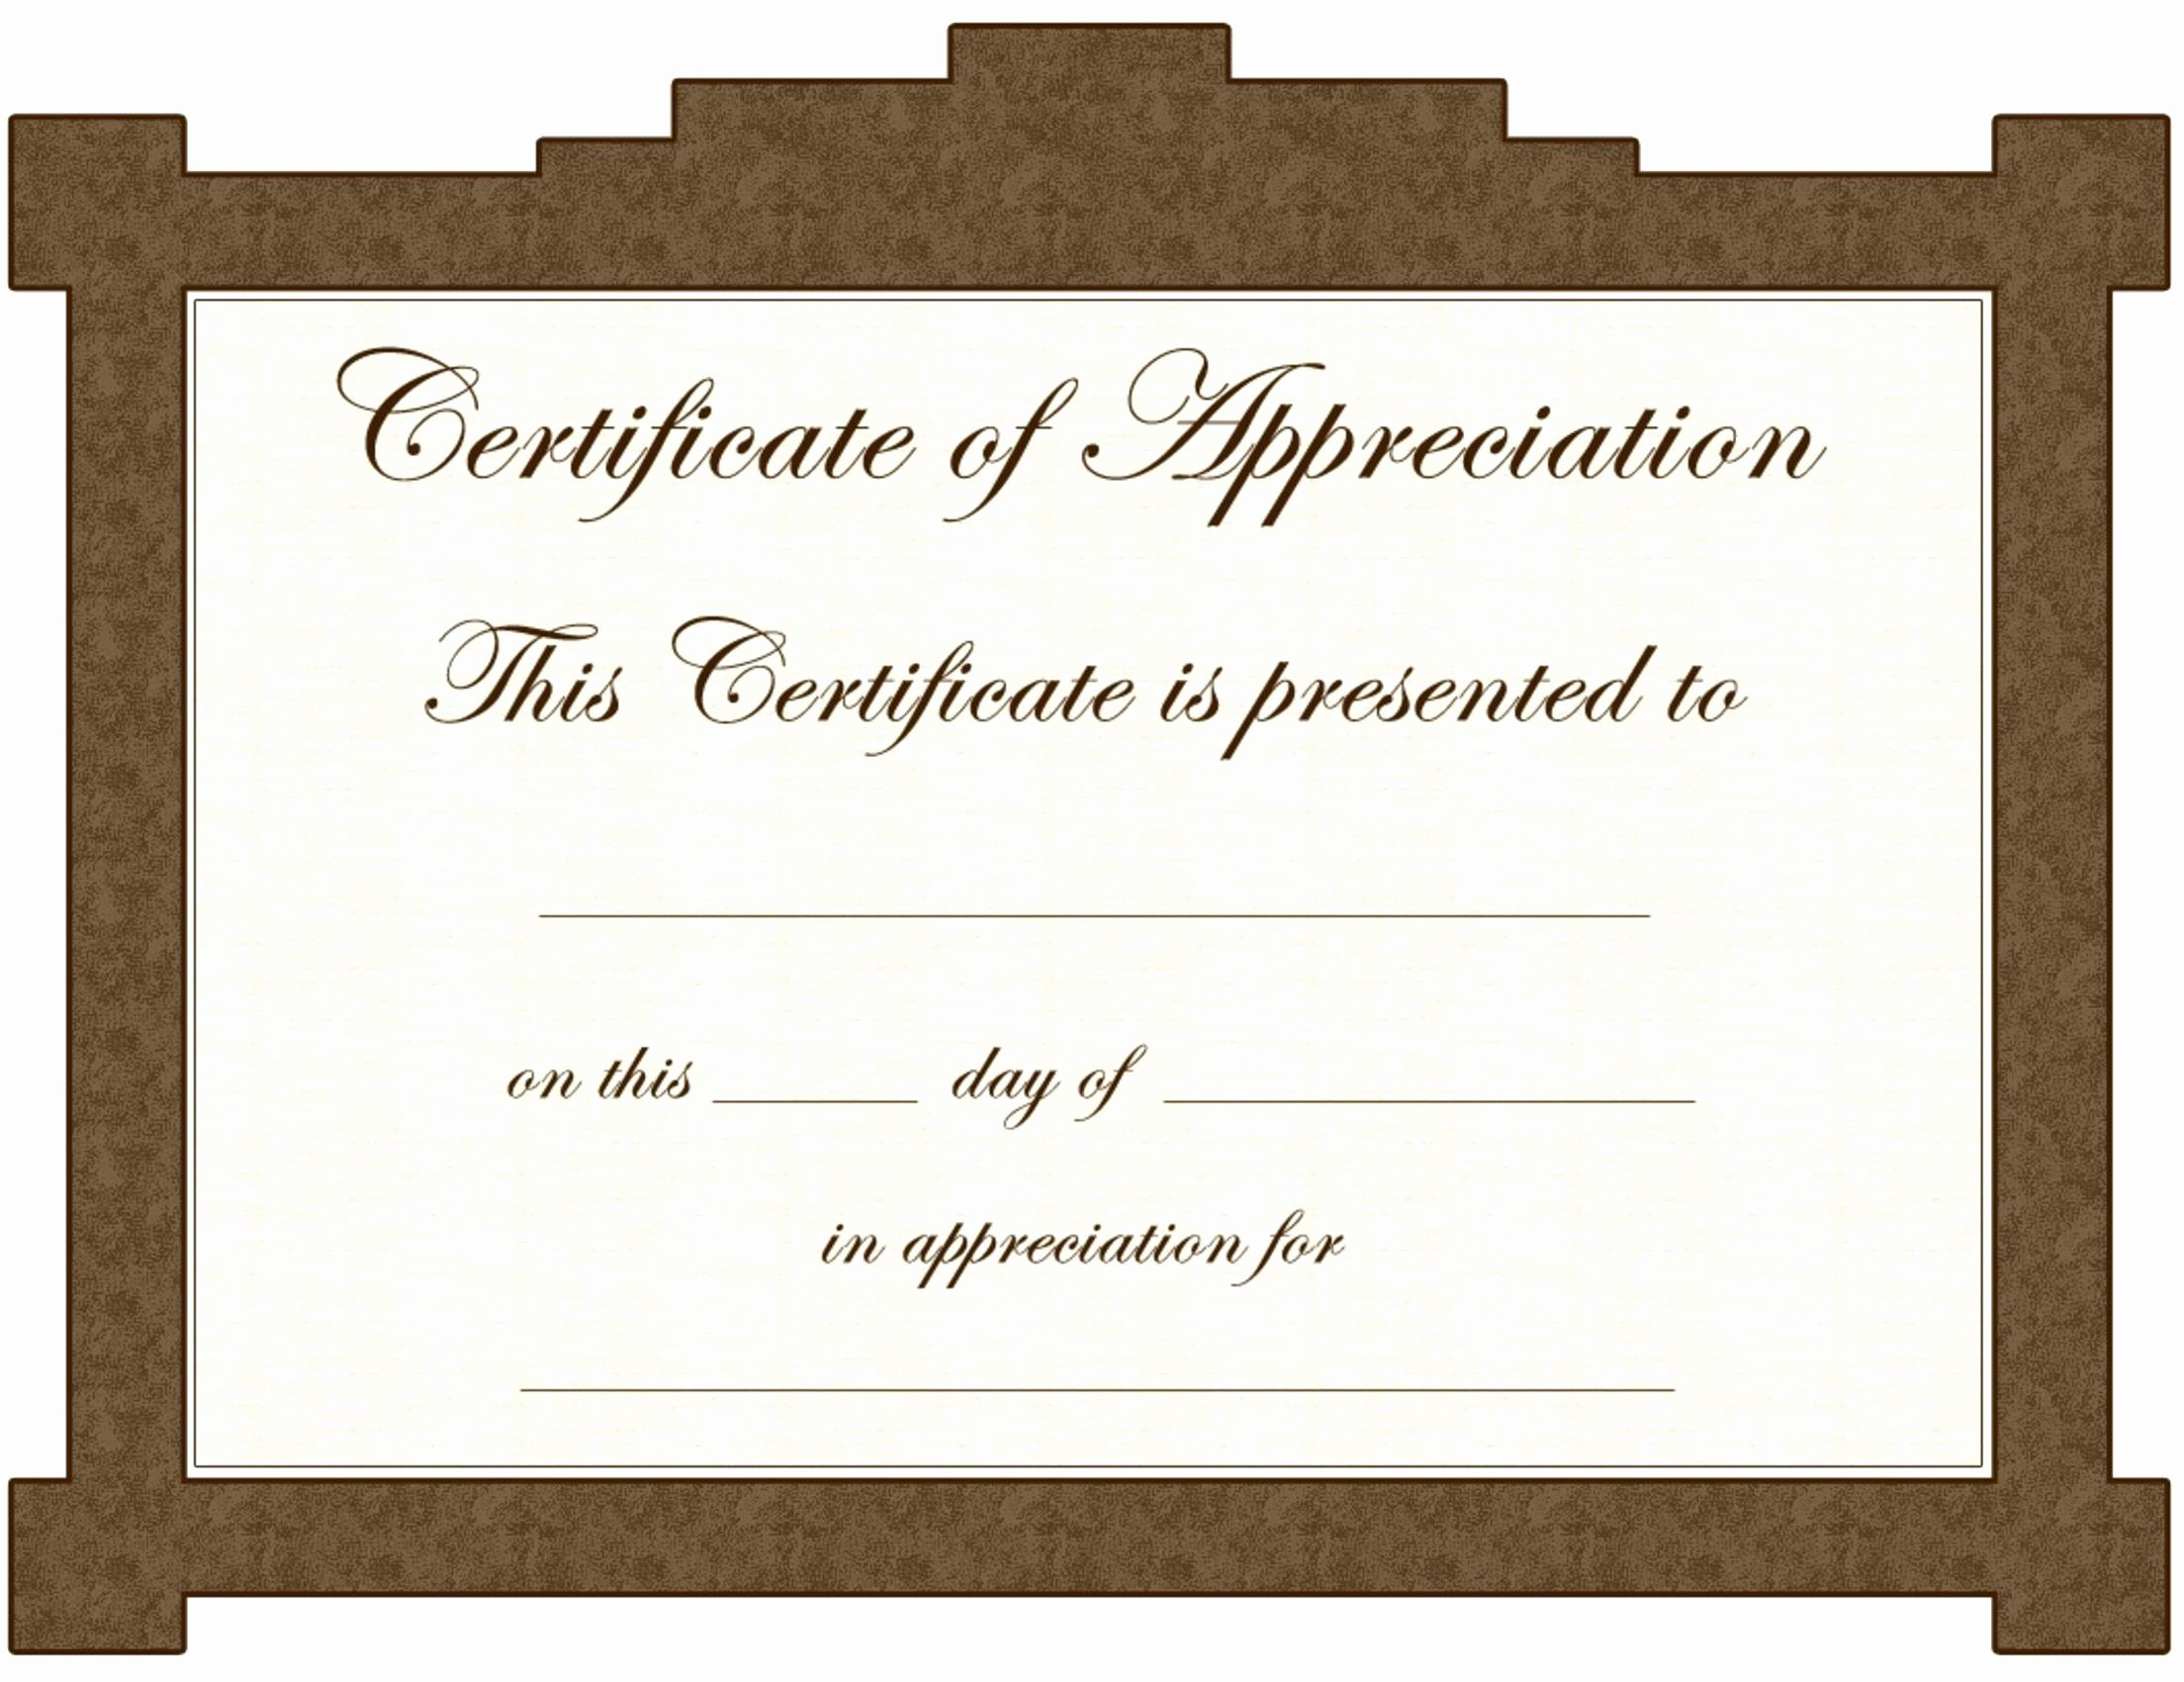 Certificate Of ordination Template Luxury Certificate ordination Pastor Template ordination